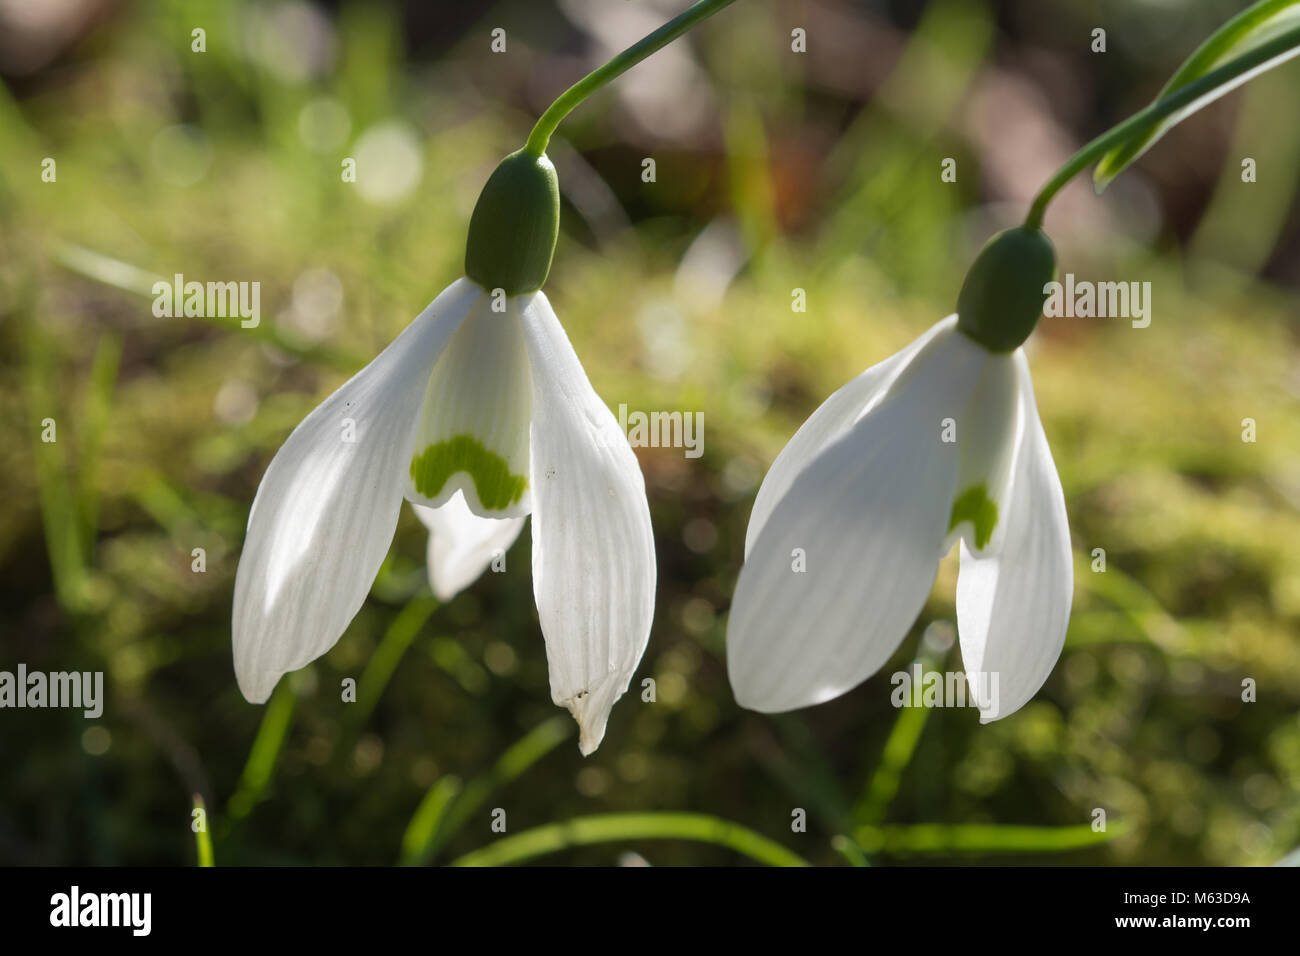 Close-up of two snowdrop (Galanthus) flowers - Stock Image